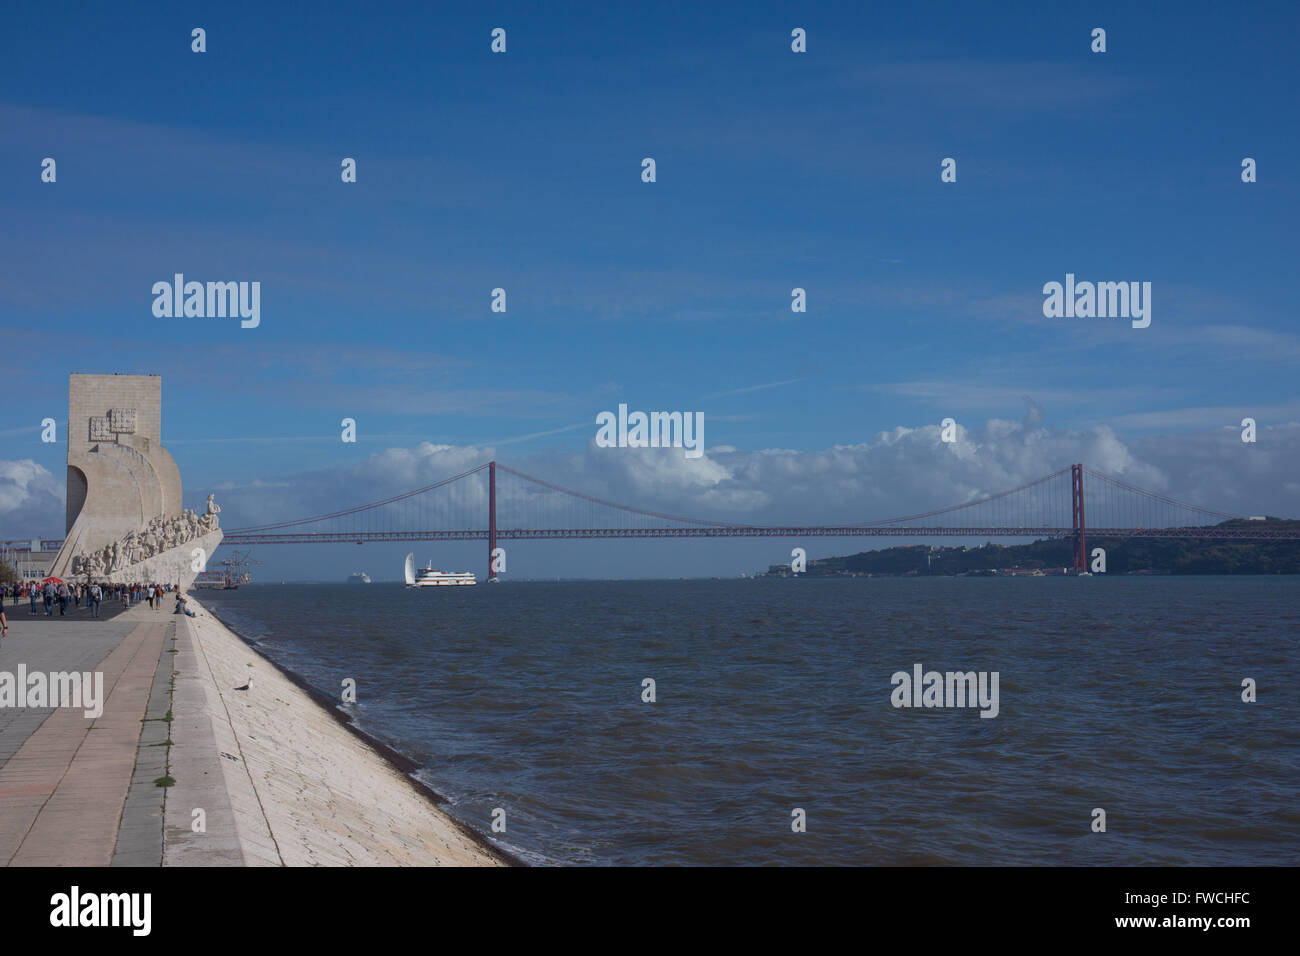 Discoveries monument with the 25th of April bridge behind, Lisbon, Portugal. - Stock Image